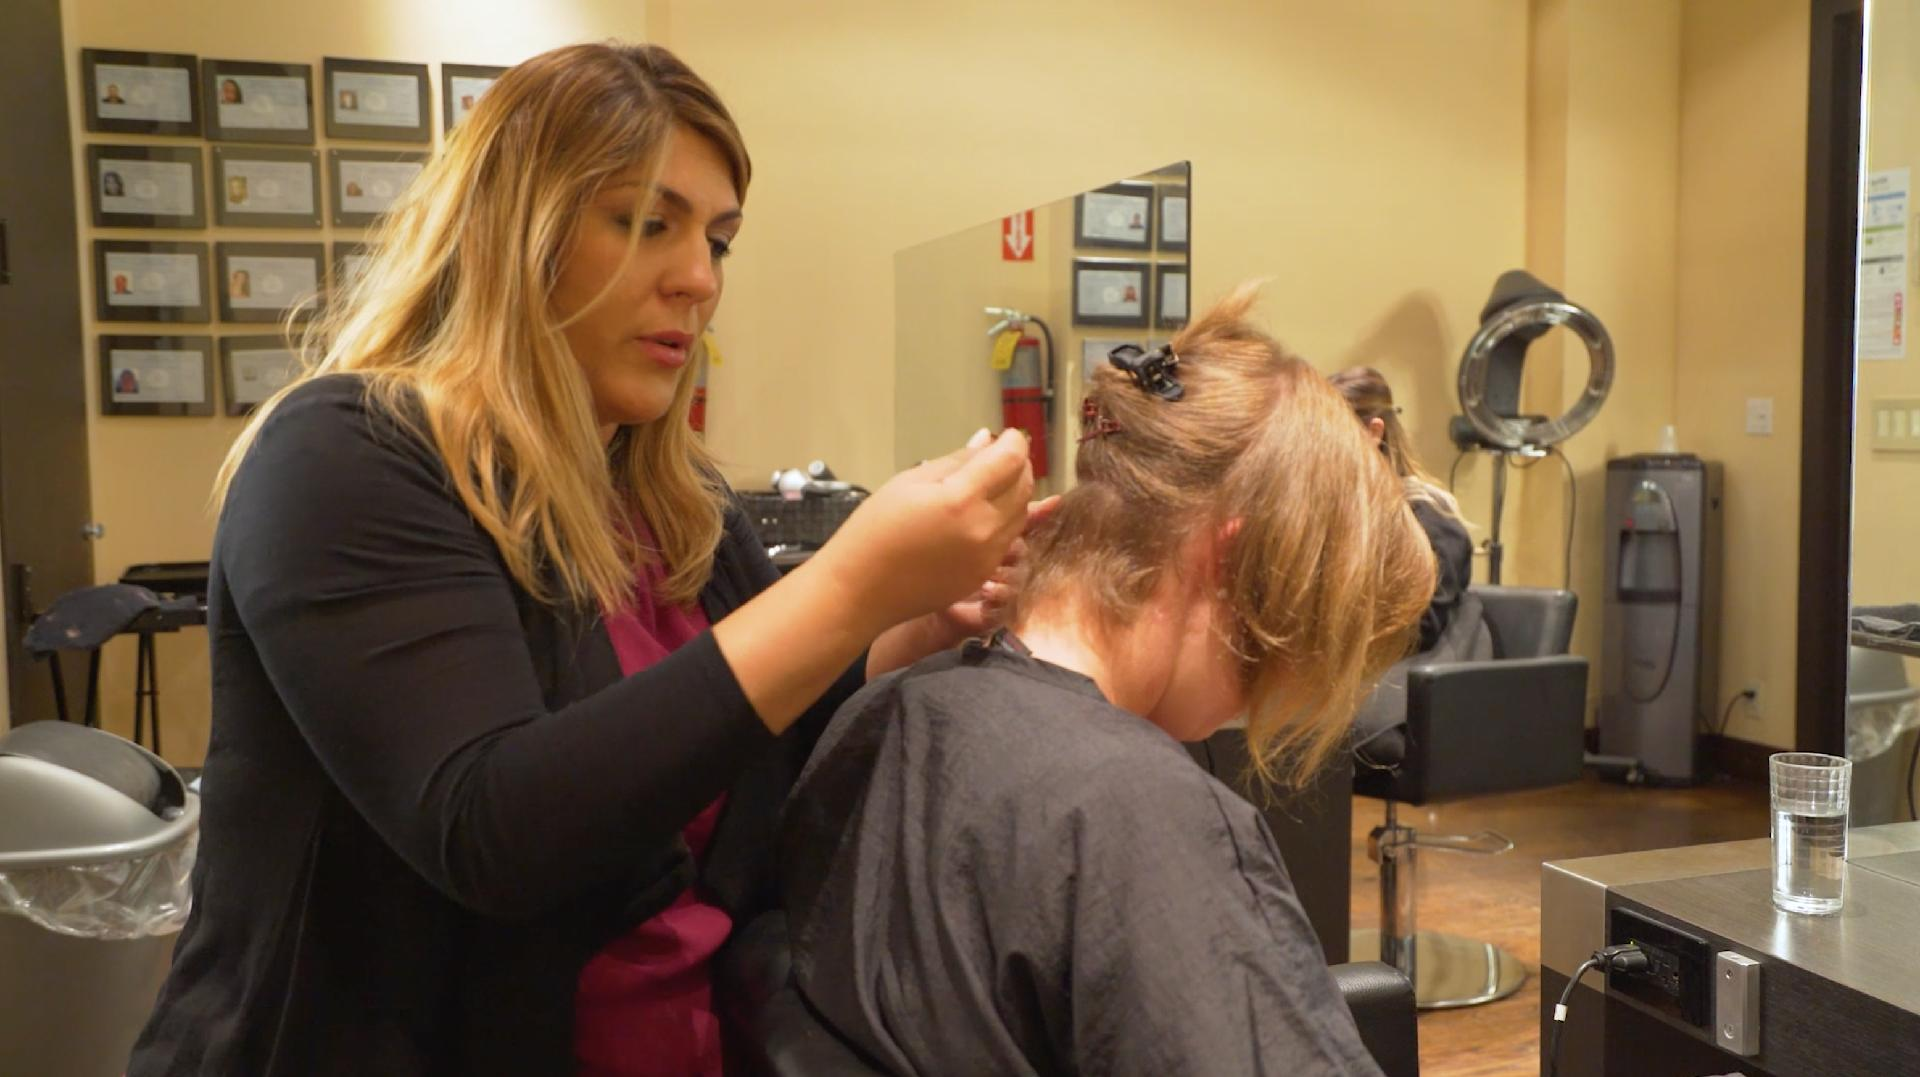 Watch the Moment a Woman Sees Her New Hair Extensions After 16 Years